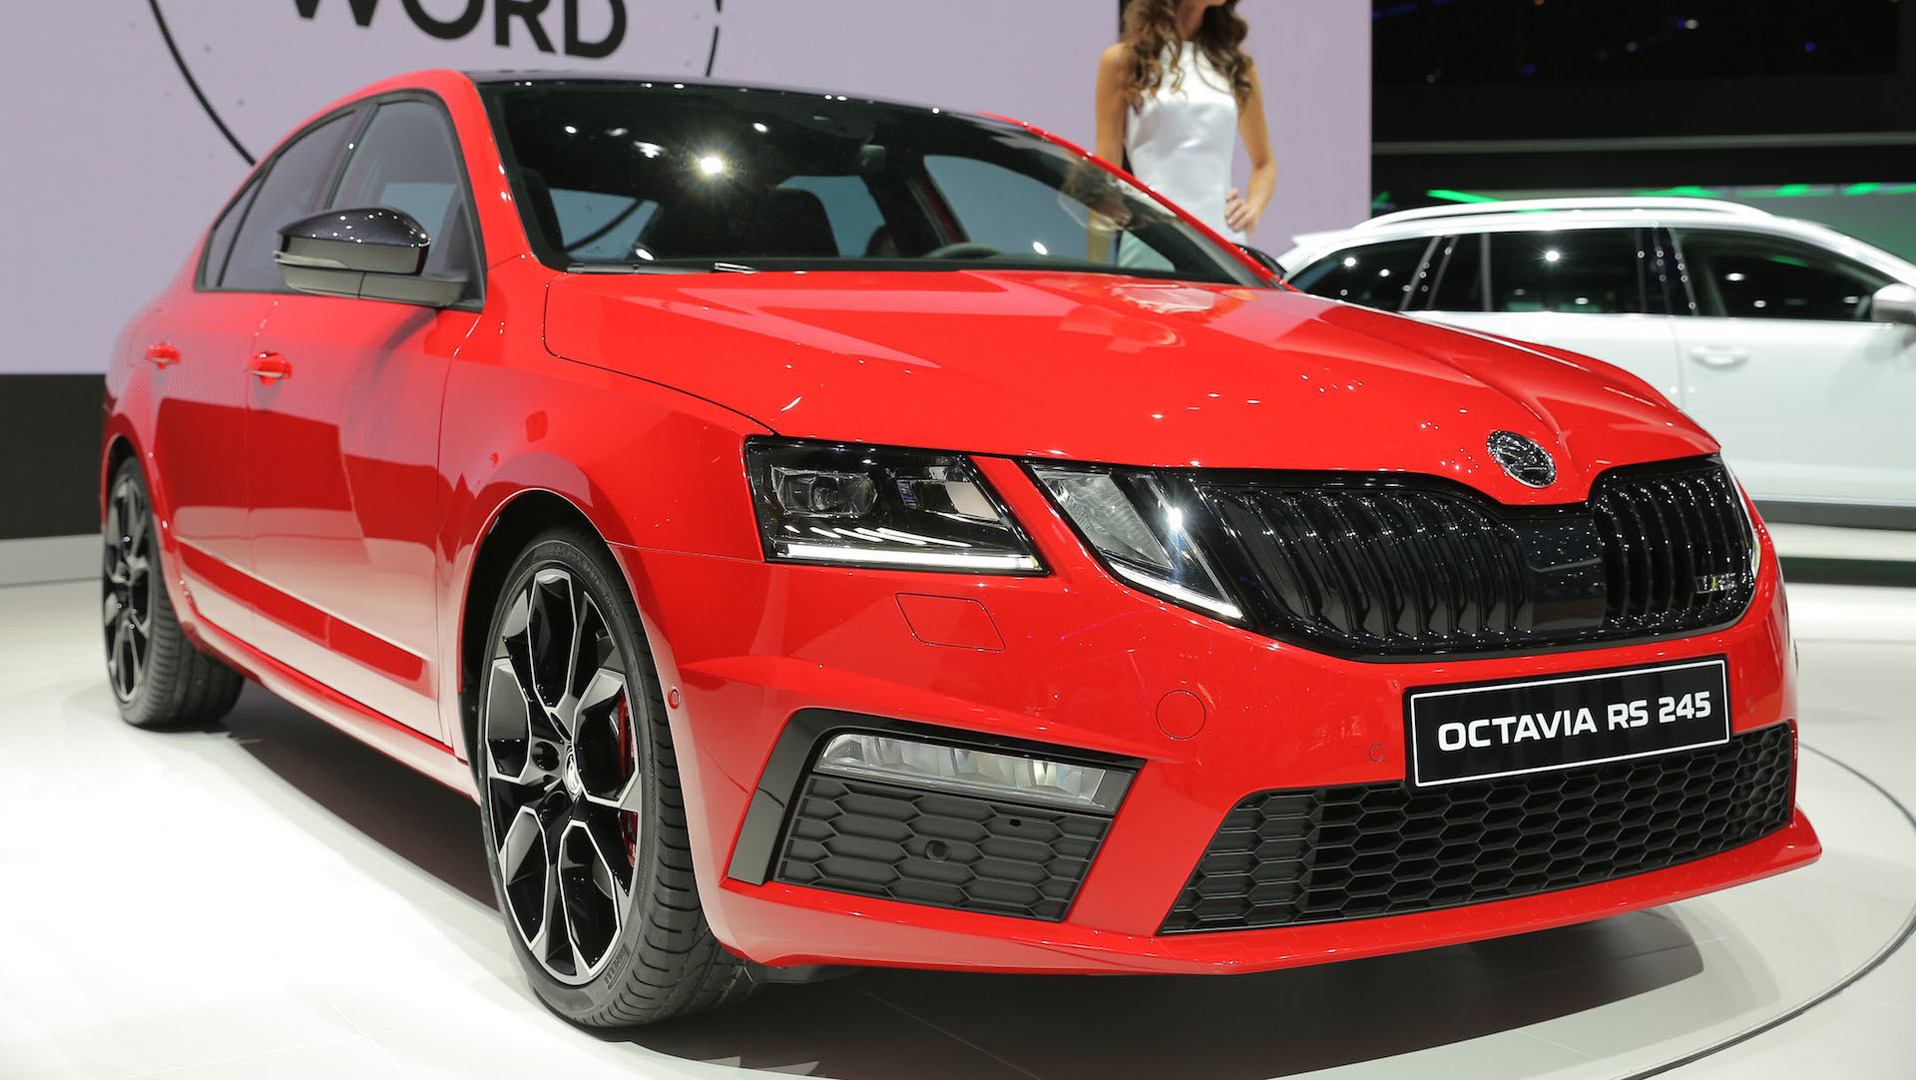 geneva motor show 2017 skoda unveiled india bound octavia rs 245. Black Bedroom Furniture Sets. Home Design Ideas